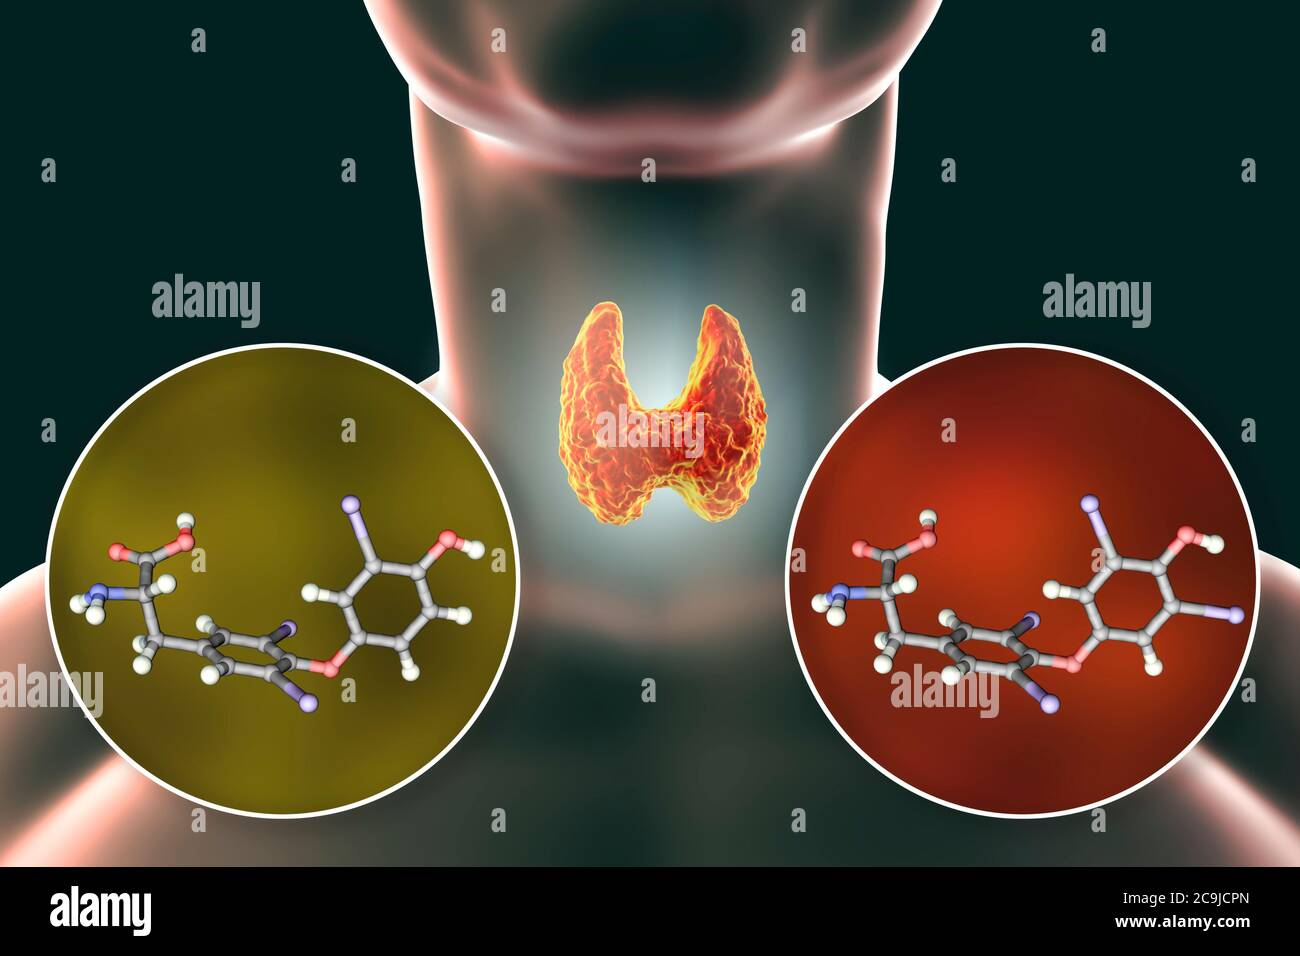 Molecules of thyroid hormones triiodothyronine (T3) and thyroxine (T4), computer illustration. Stock Photo